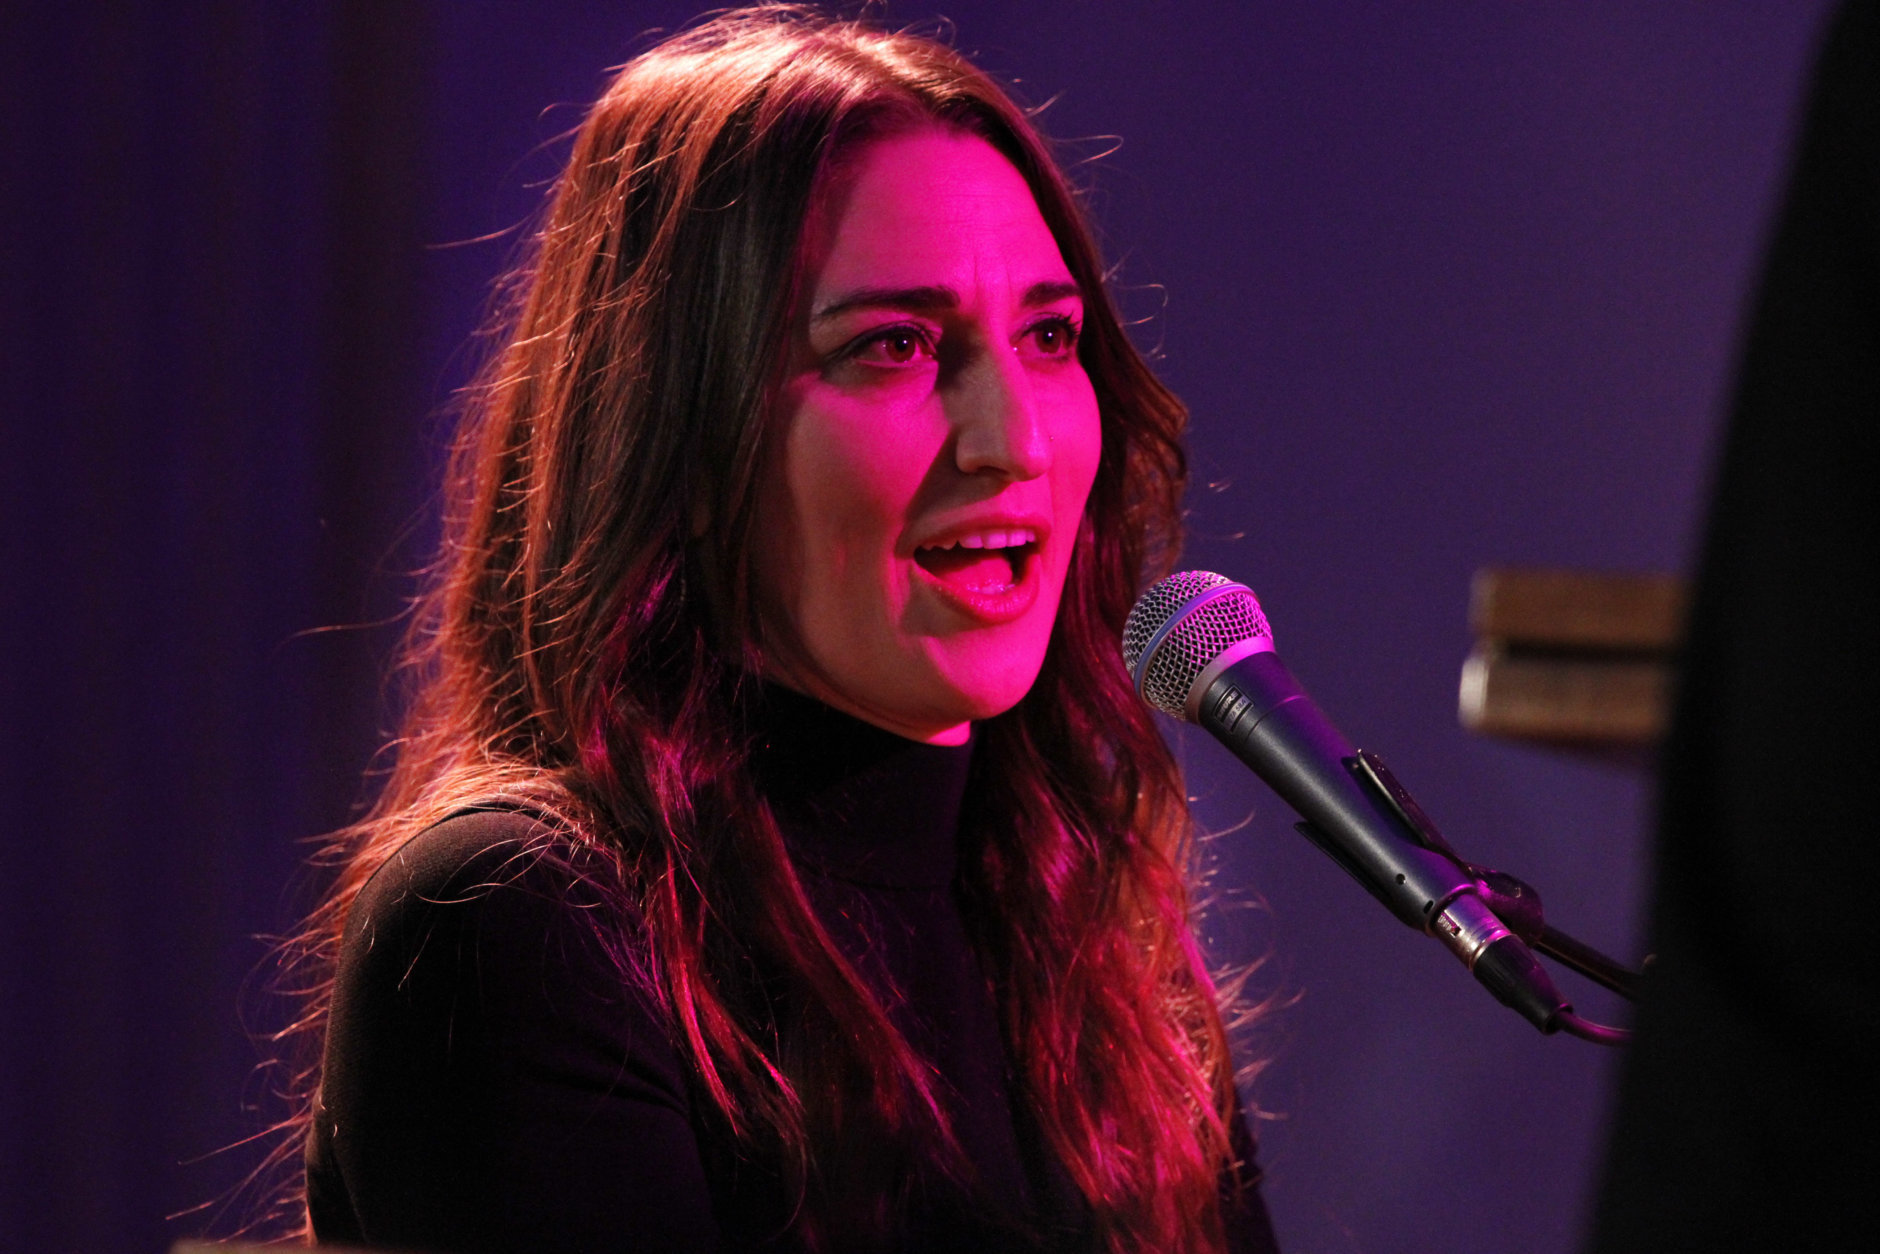 """Under a pink stage light, singer Sara Bareilles performs her song, """"Brave,"""" for President Barack Obama, first lady Michelle Obama, Canadian Prime Minister Justin Trudeau and Sophie Grégoire Trudeau, in the State Dining Room of the White House in Washington, Thursday, March 10, 2016, after a State Dinner. (AP Photo/Jacquelyn Martin)"""